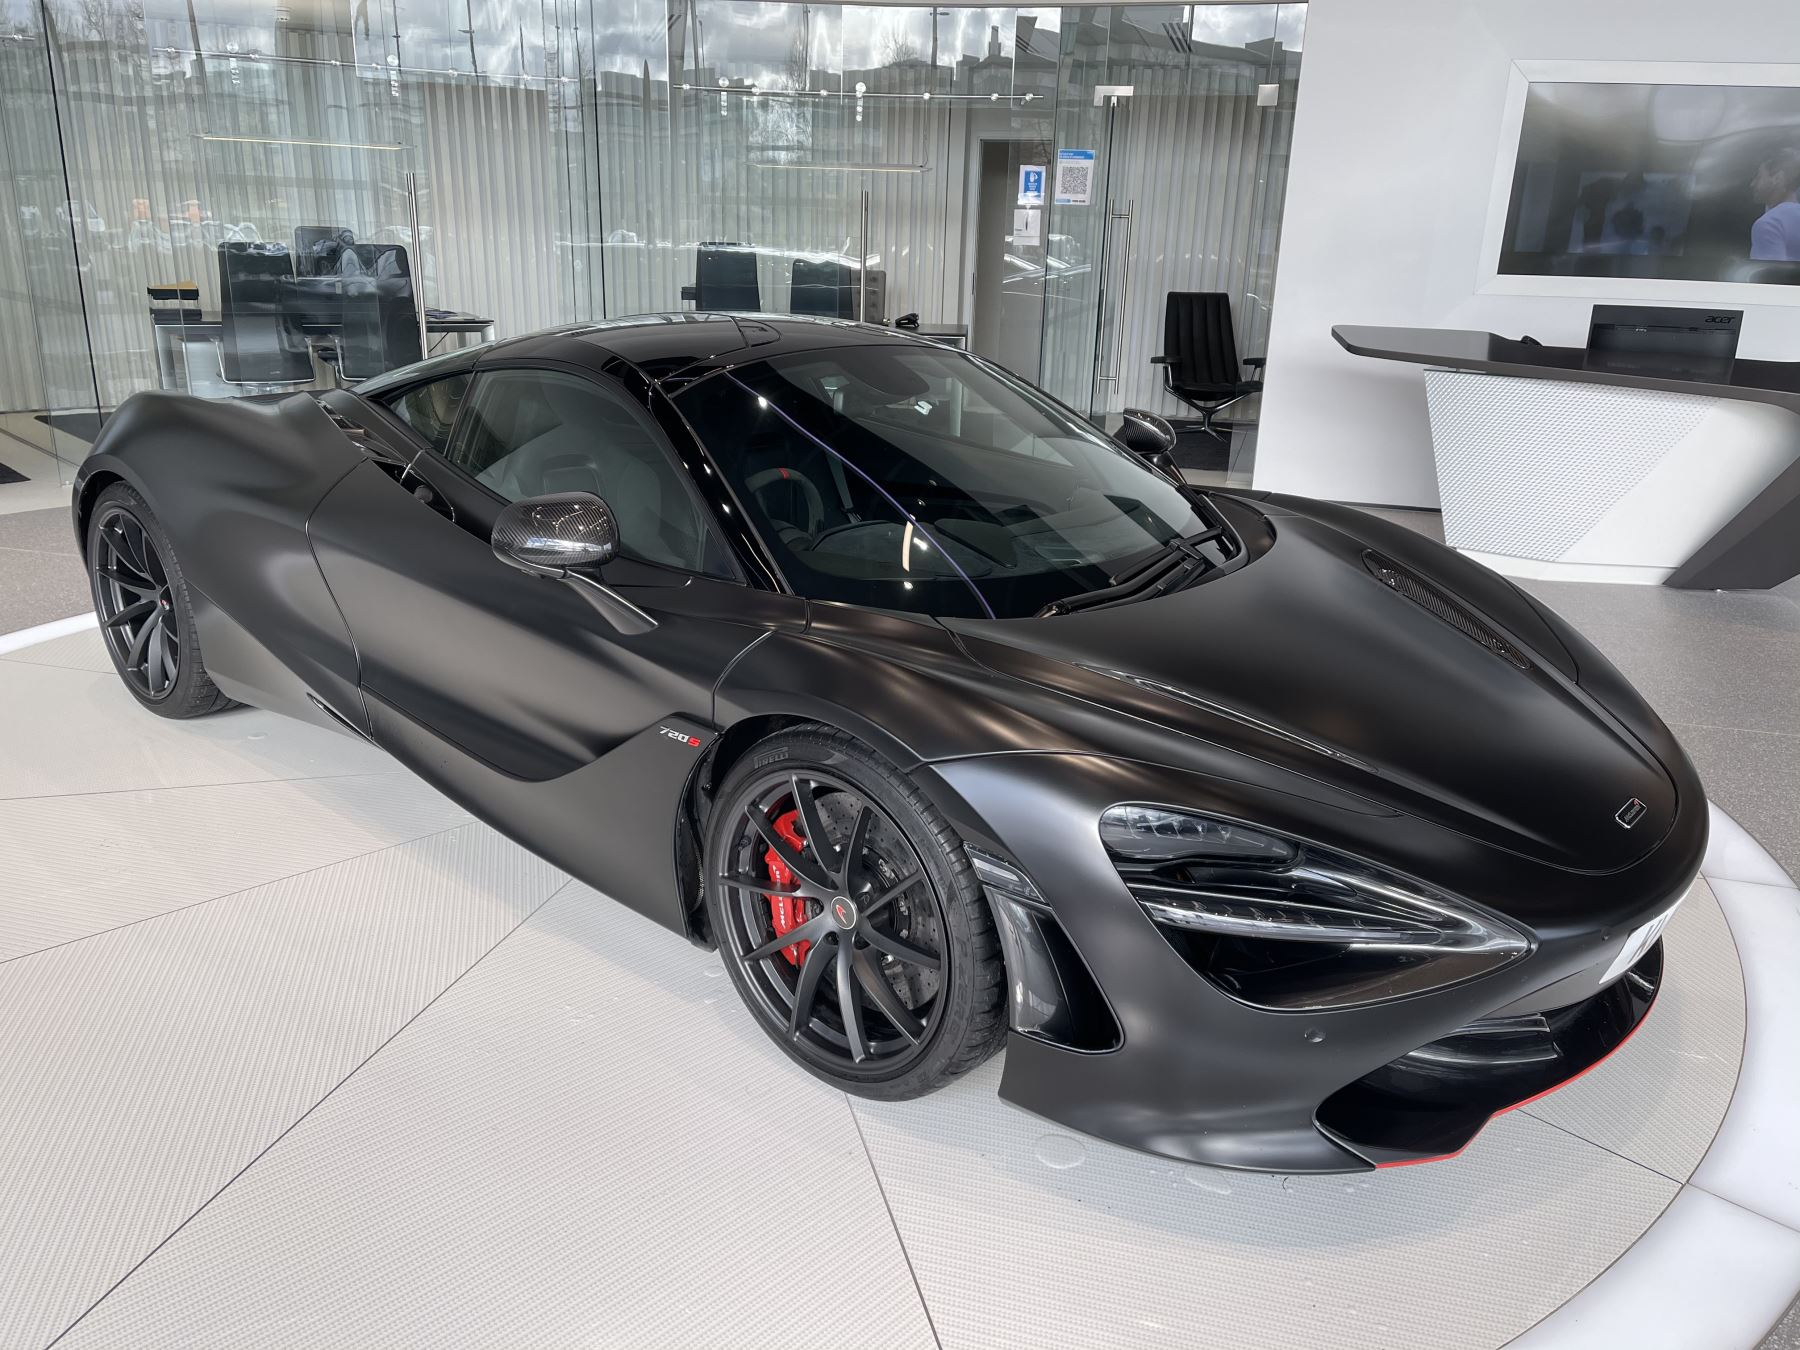 McLaren 720S 4.V8 2 DR PERFORMANCE 4.0 Automatic 2 door Coupe